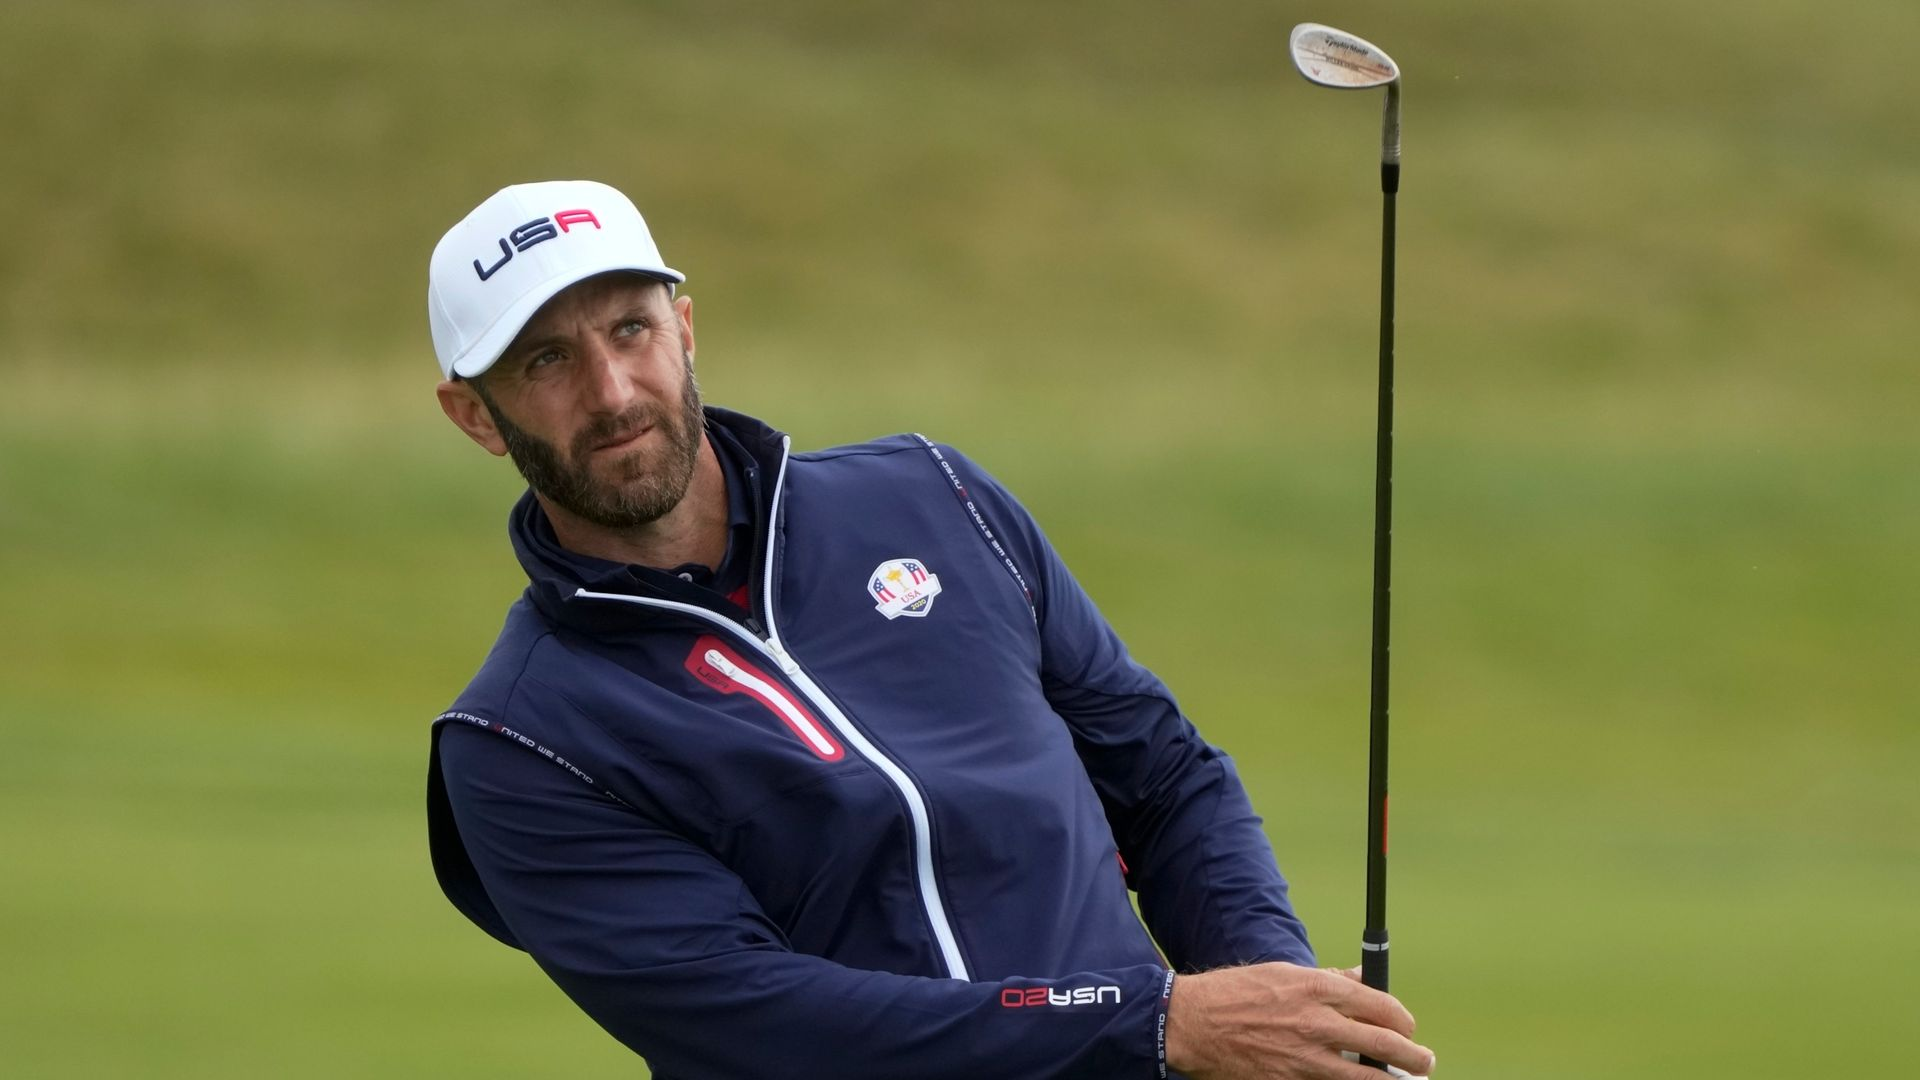 DJ 'would love' future Ryder Cup captain role